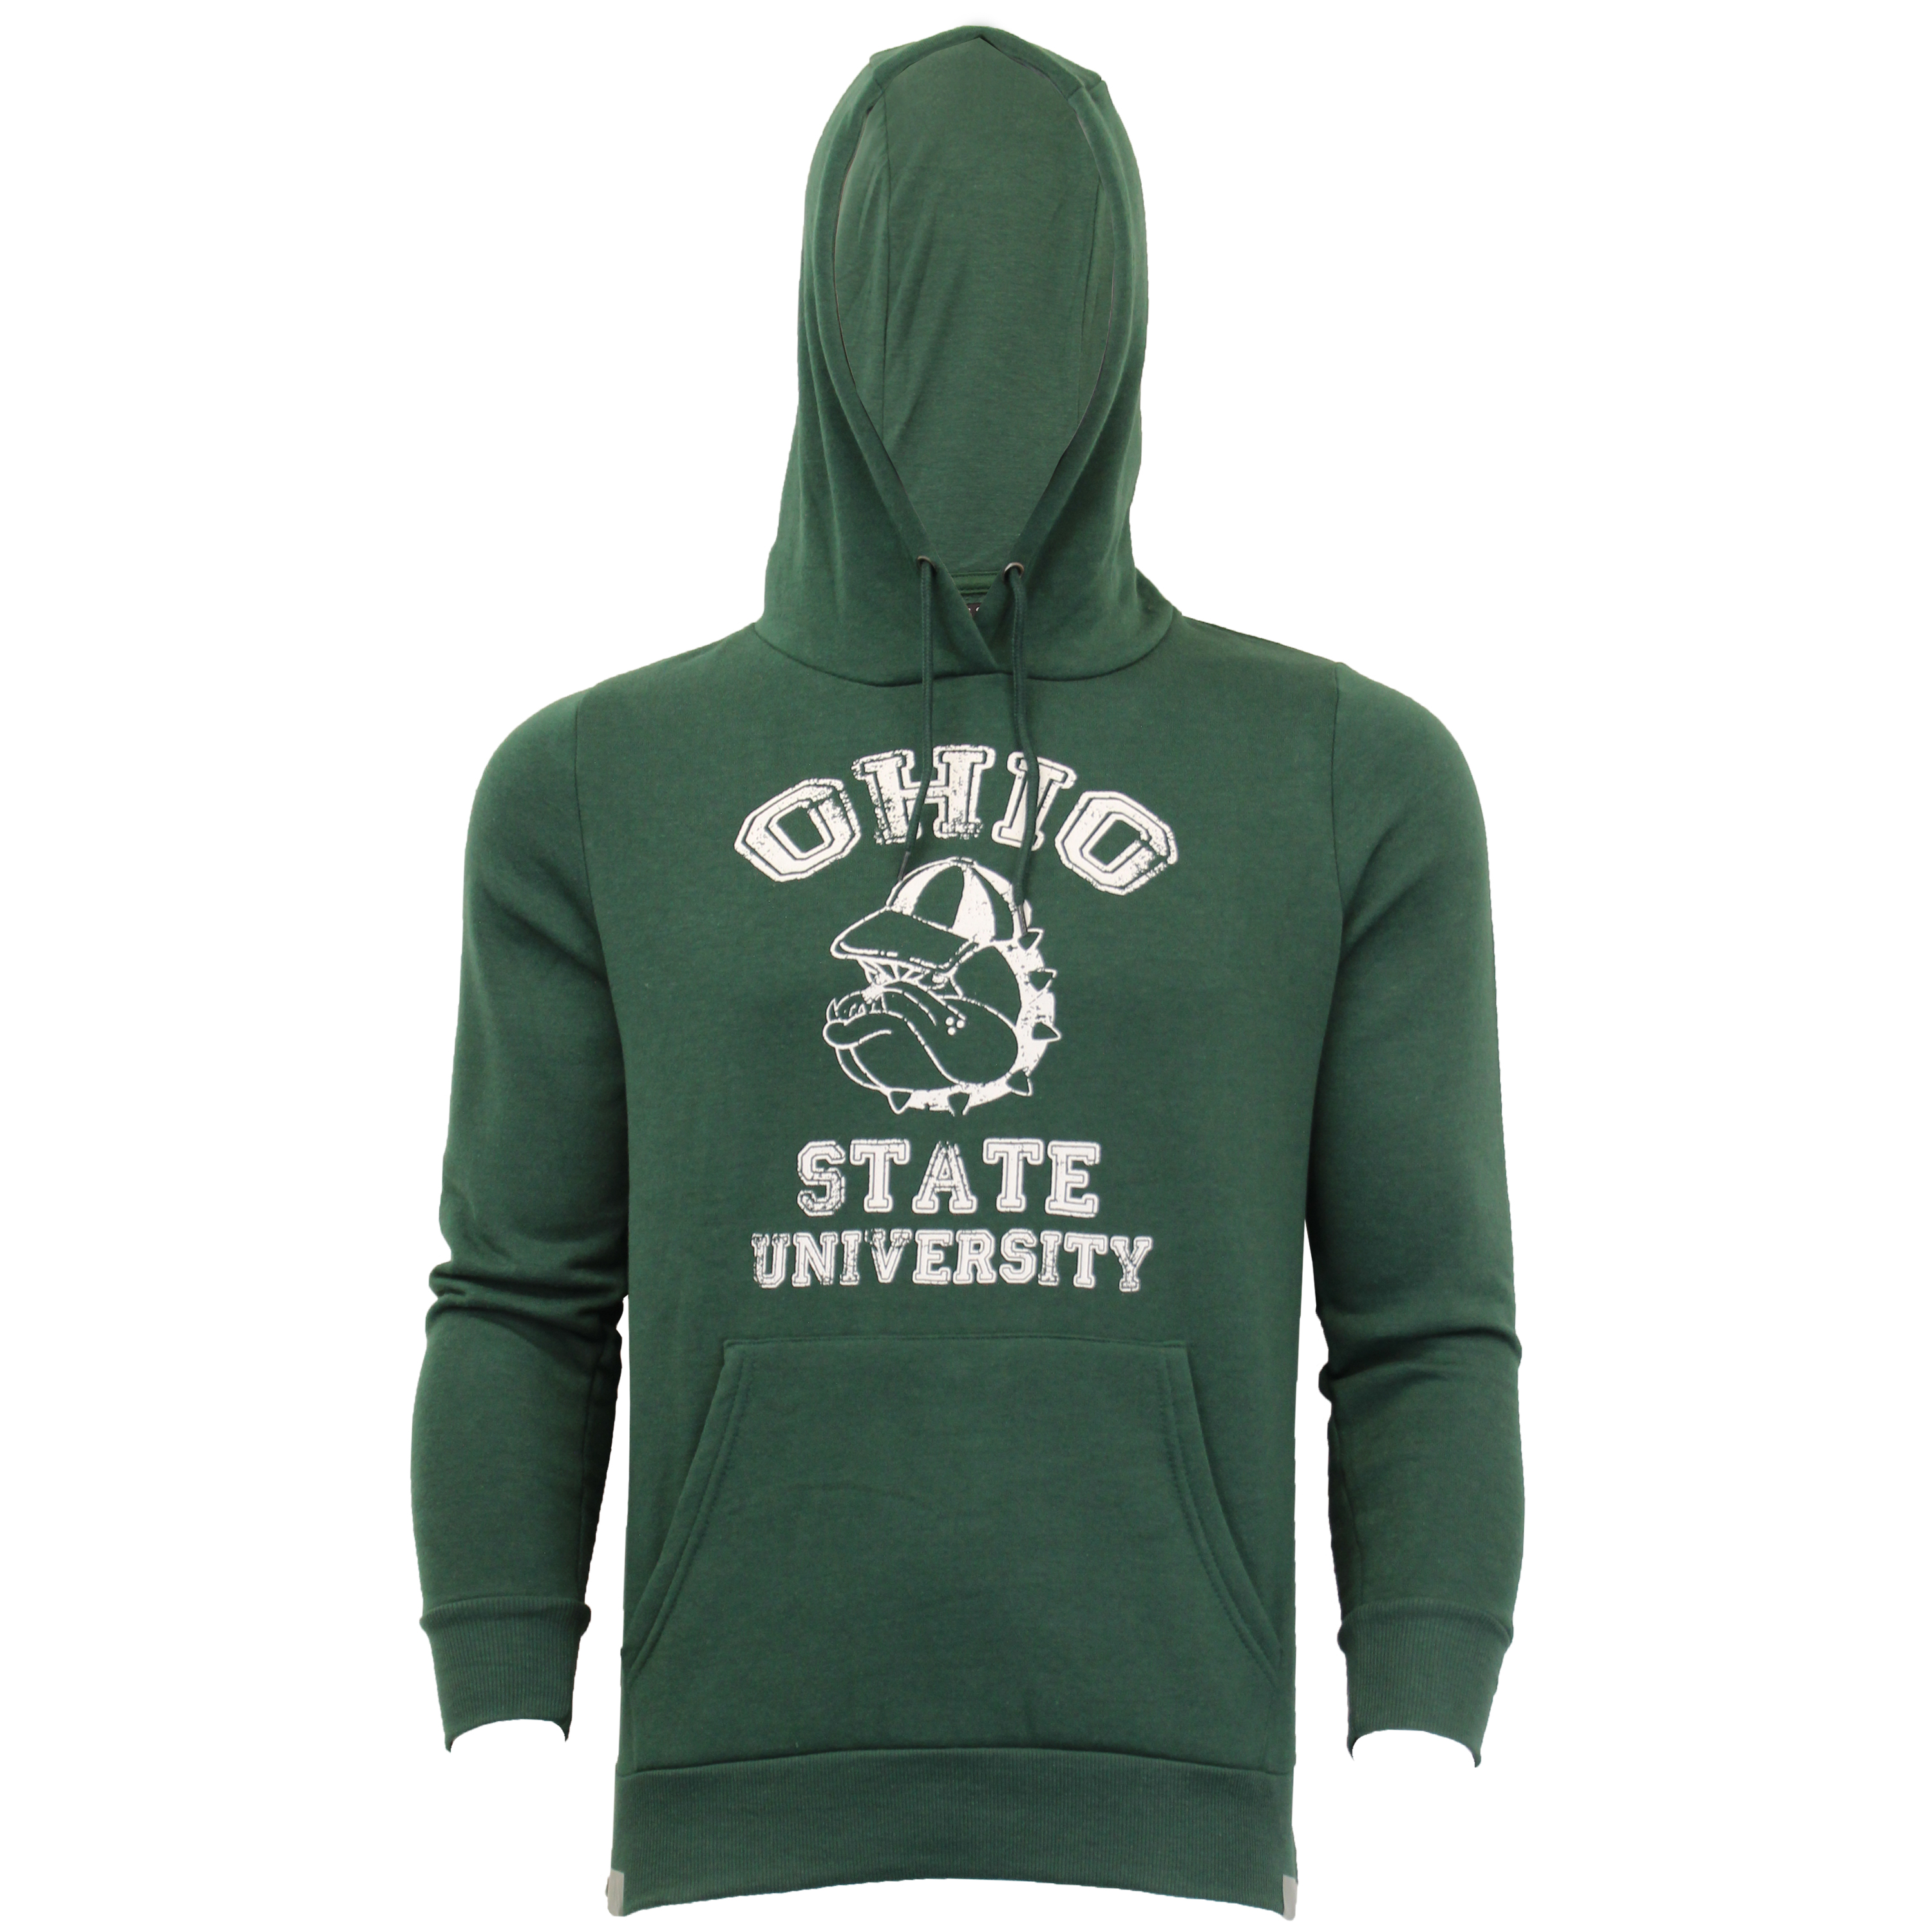 Mens-Sweatshirt-Brave-Soul-Over-The-Head-Hoodie-OHIO-Pullover-Top-CLEVELAND-New thumbnail 3